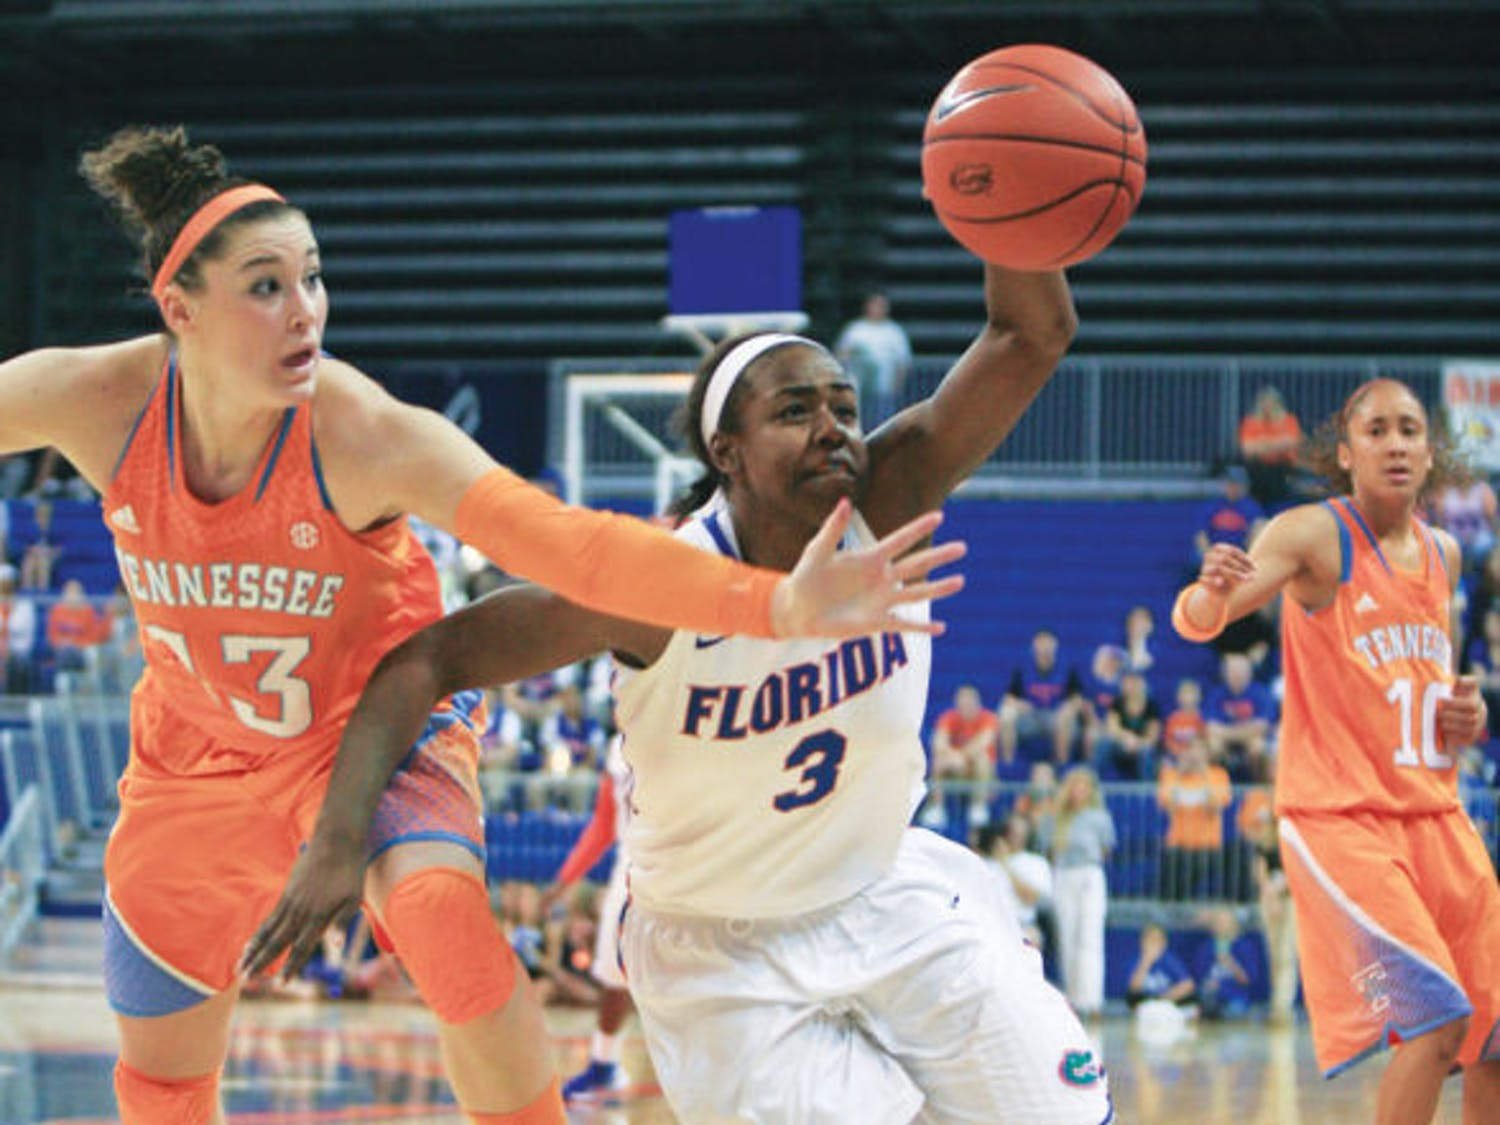 Guard January Miller (3) fights for possession with guard Taber Spani (13) during Florida's 78-75 overtime loss to Tennessee on Sunday in the O'Connell Center.